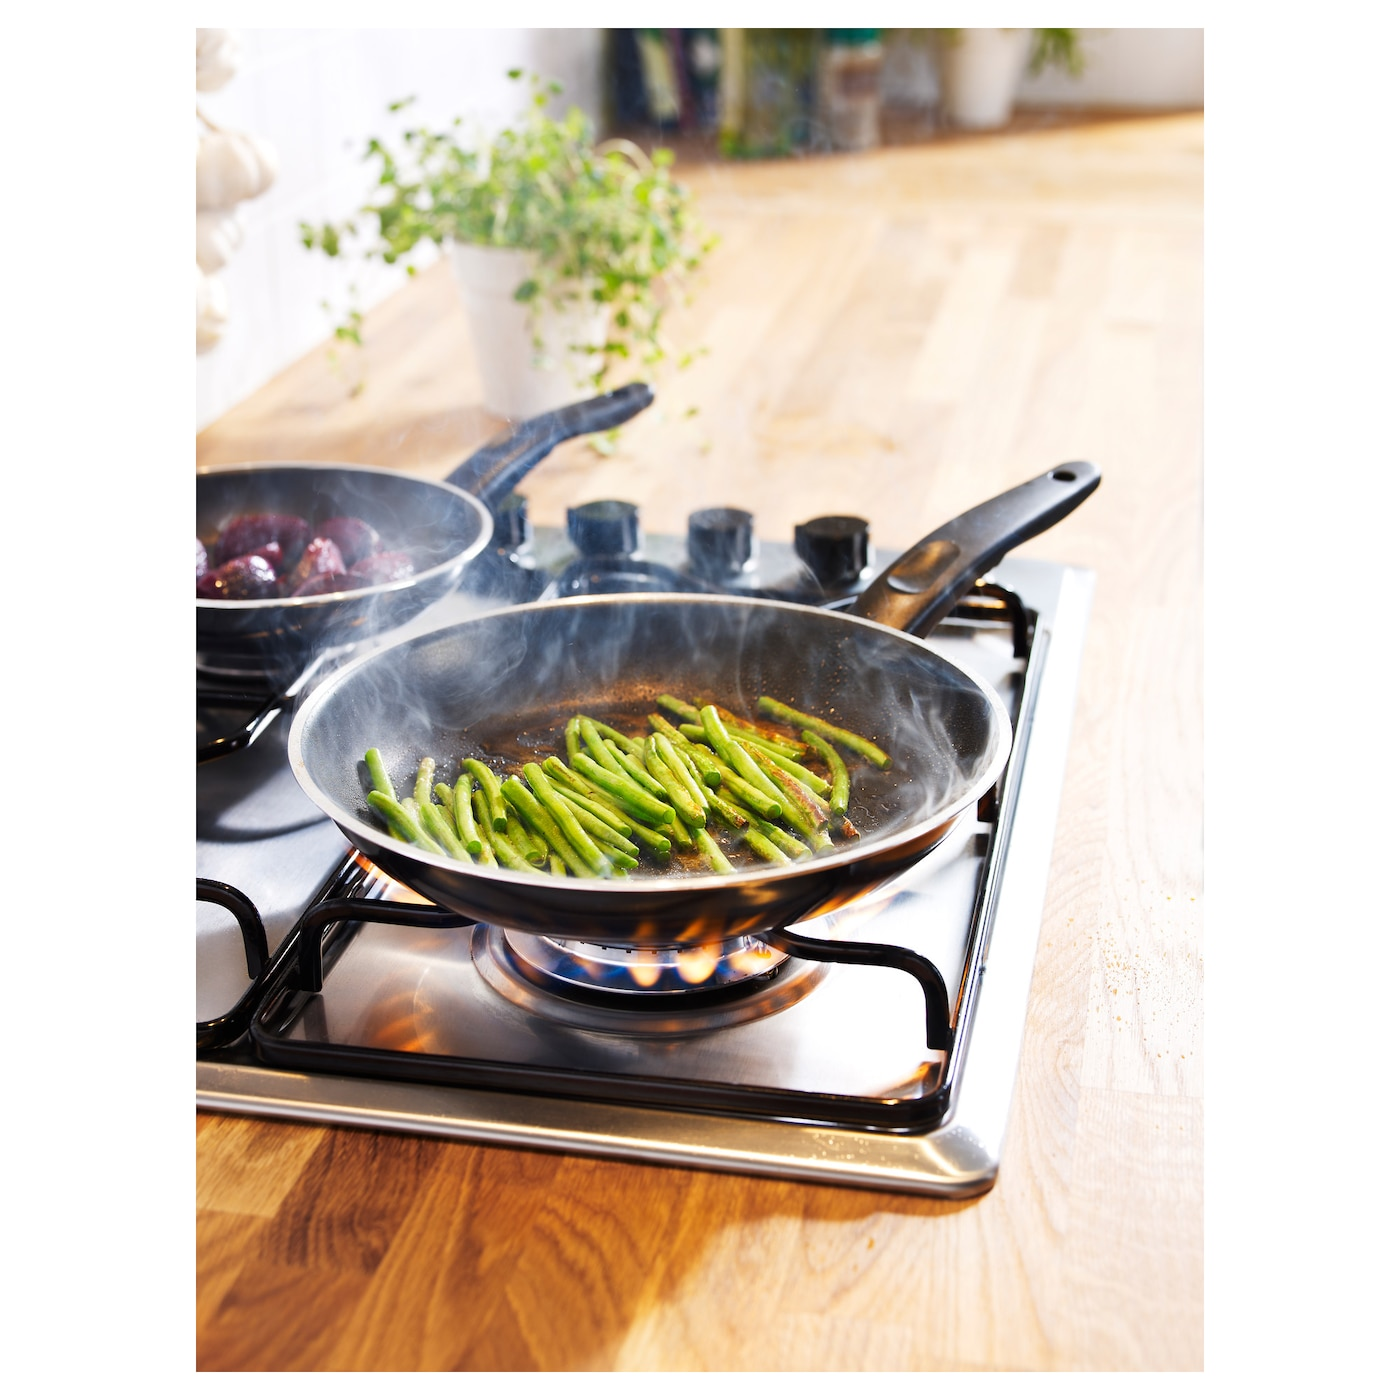 IKEA KAVALKAD frying pan, set of 2